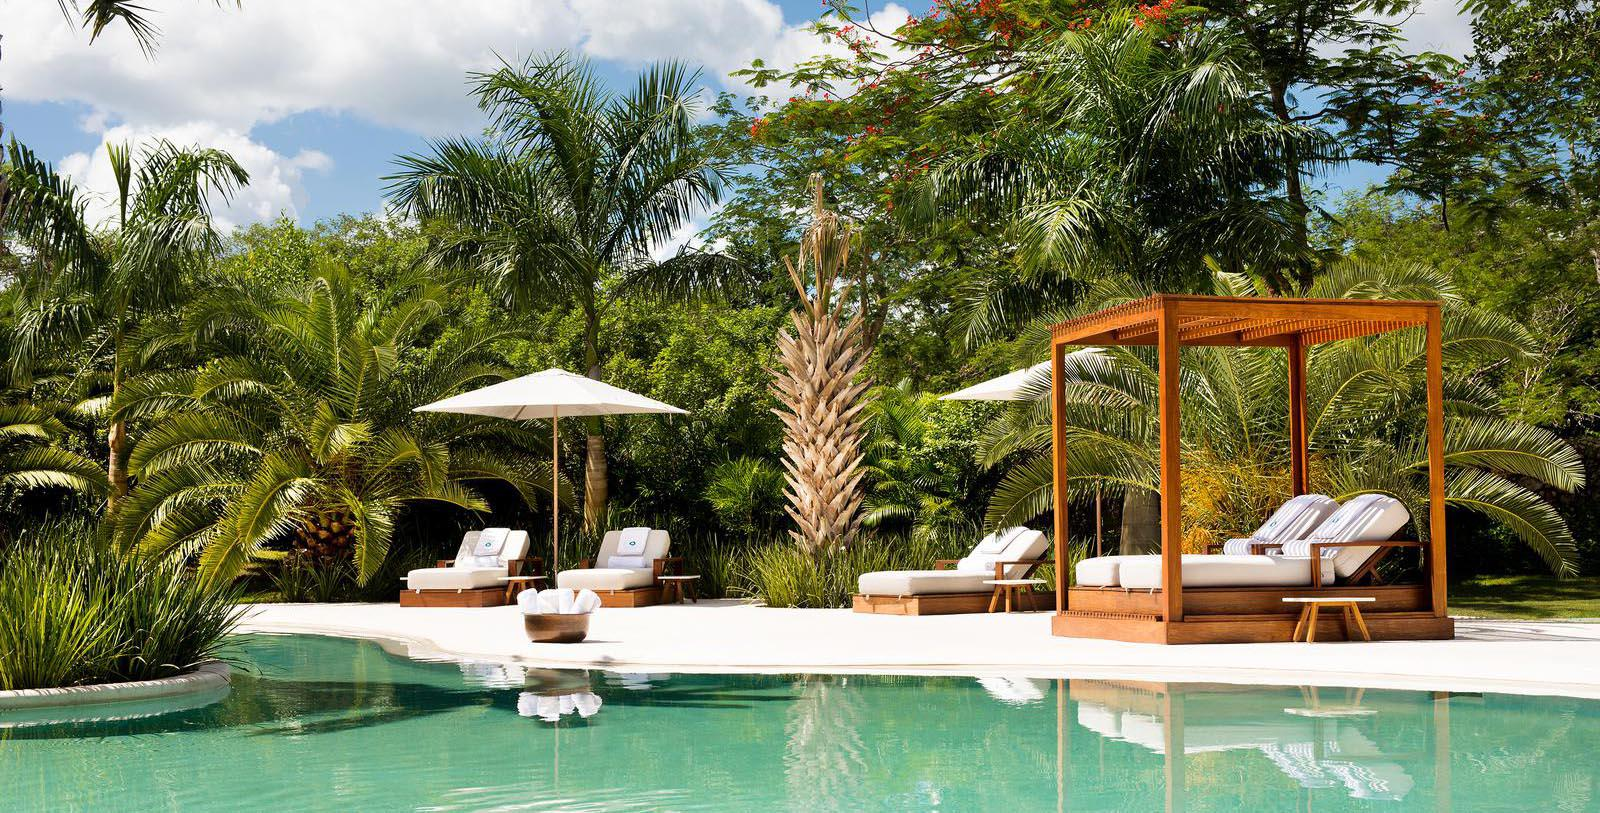 Image of pool area Chablé Resort & Spa, 1650, Member of Historic Hotels Worldwide, in Chocholá, Mexico, Explore